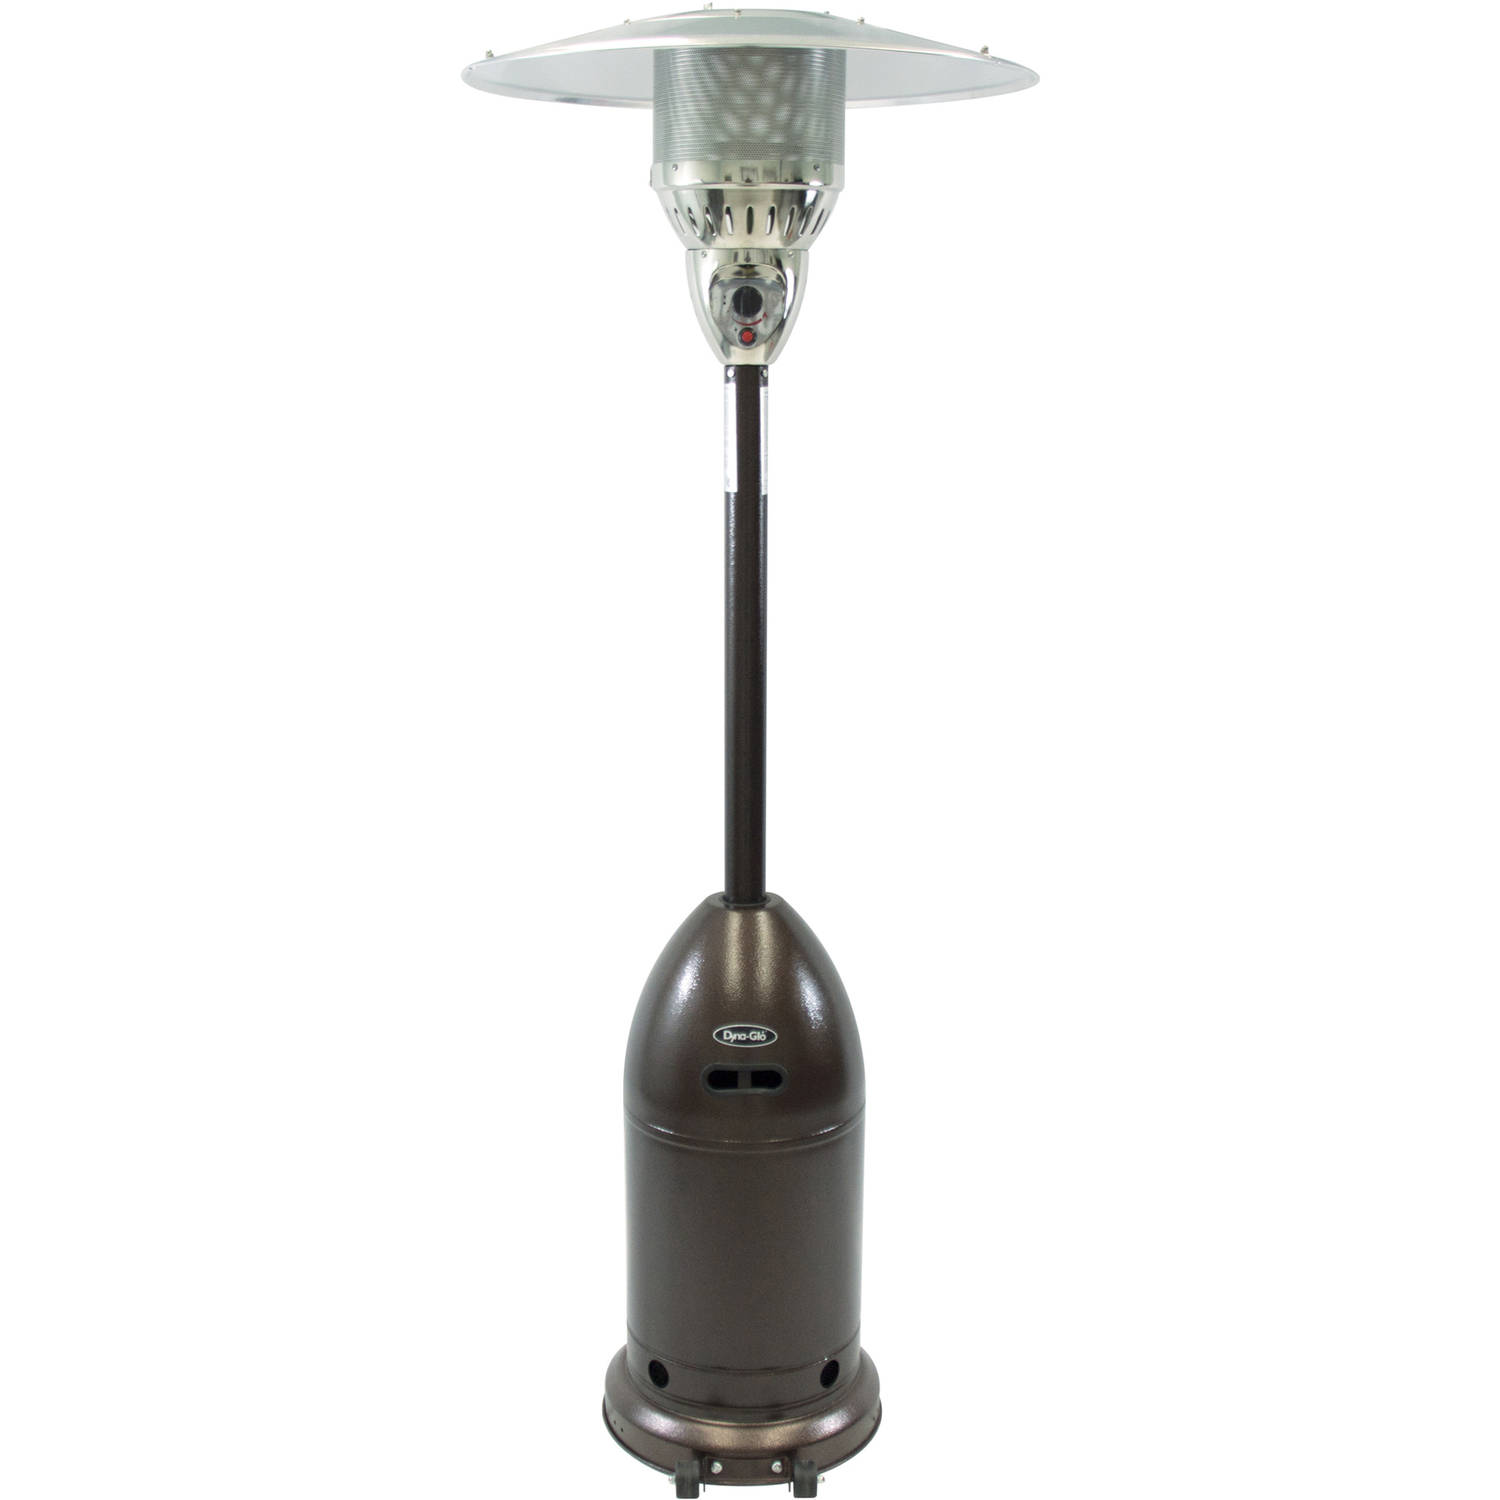 Dyna Glo DGPH201BR 48,000 BTU Premium Hammered Bronze Patio Heater by GHP Group